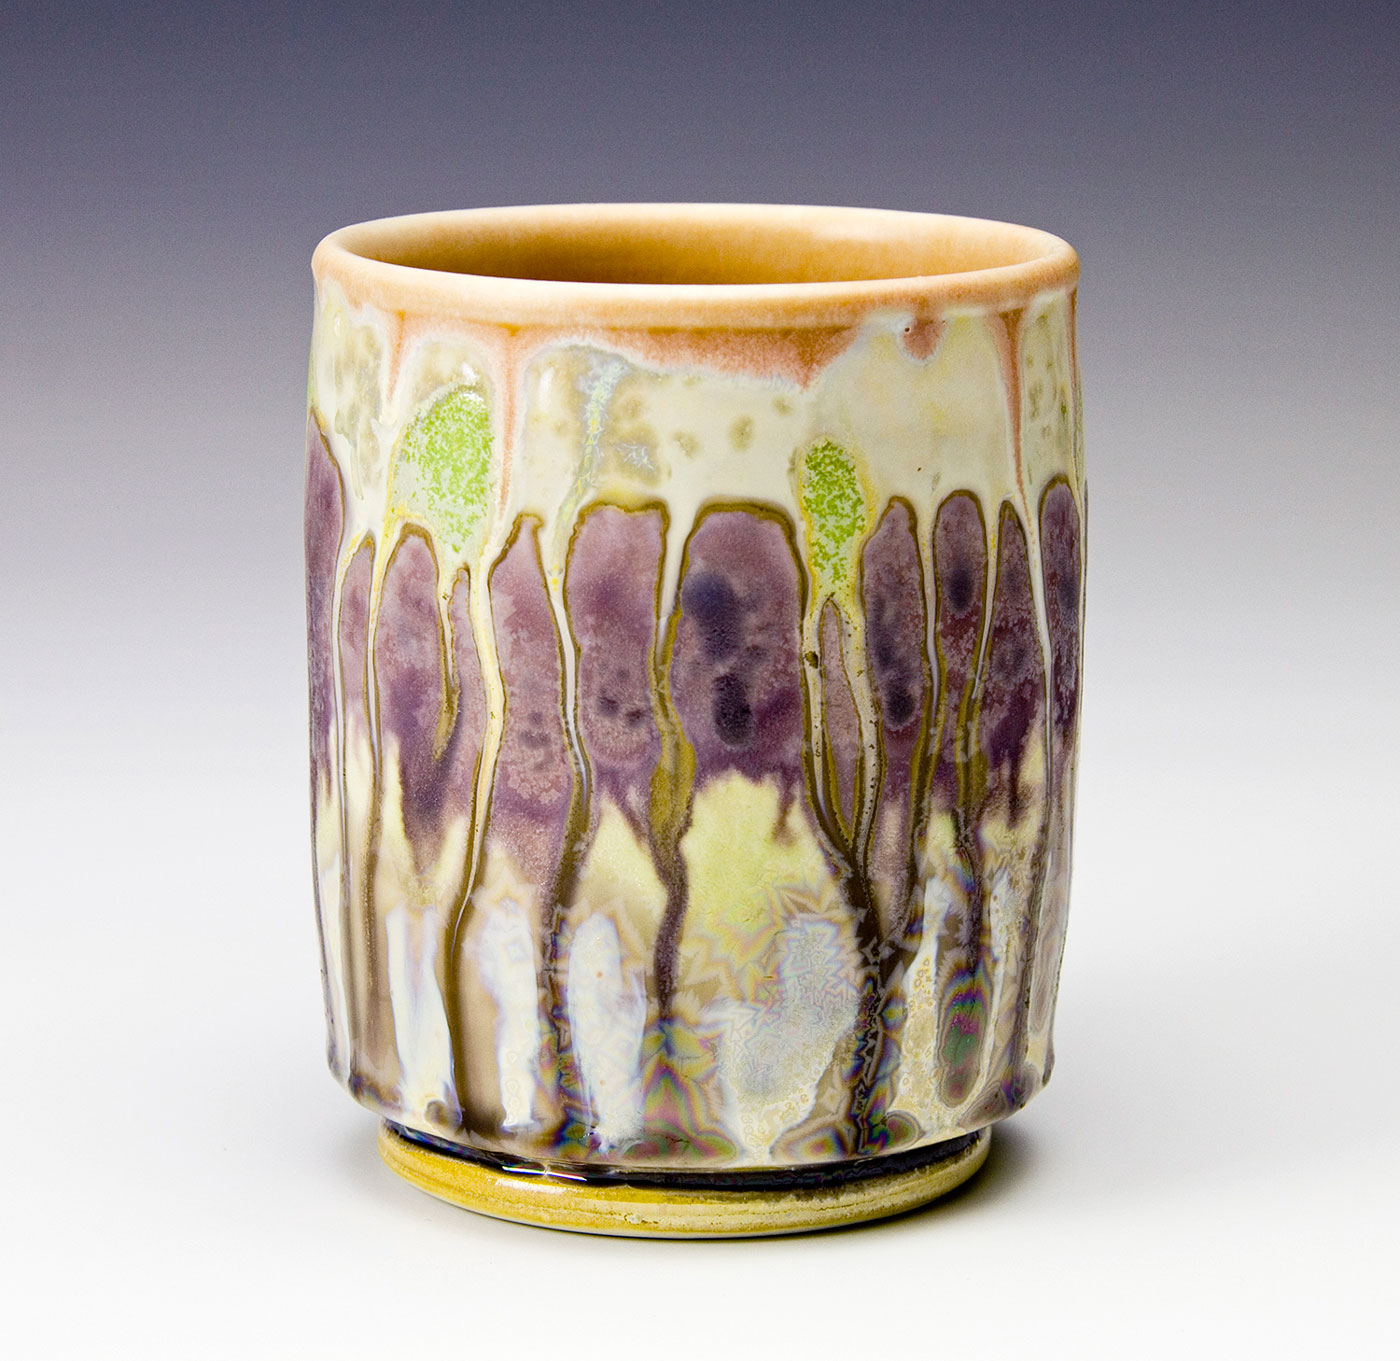 Abstract-Art-Flow-contemporary-ceramic-drinking-cup-Samantha-Henneke-Bulldog-Pottery.jpg